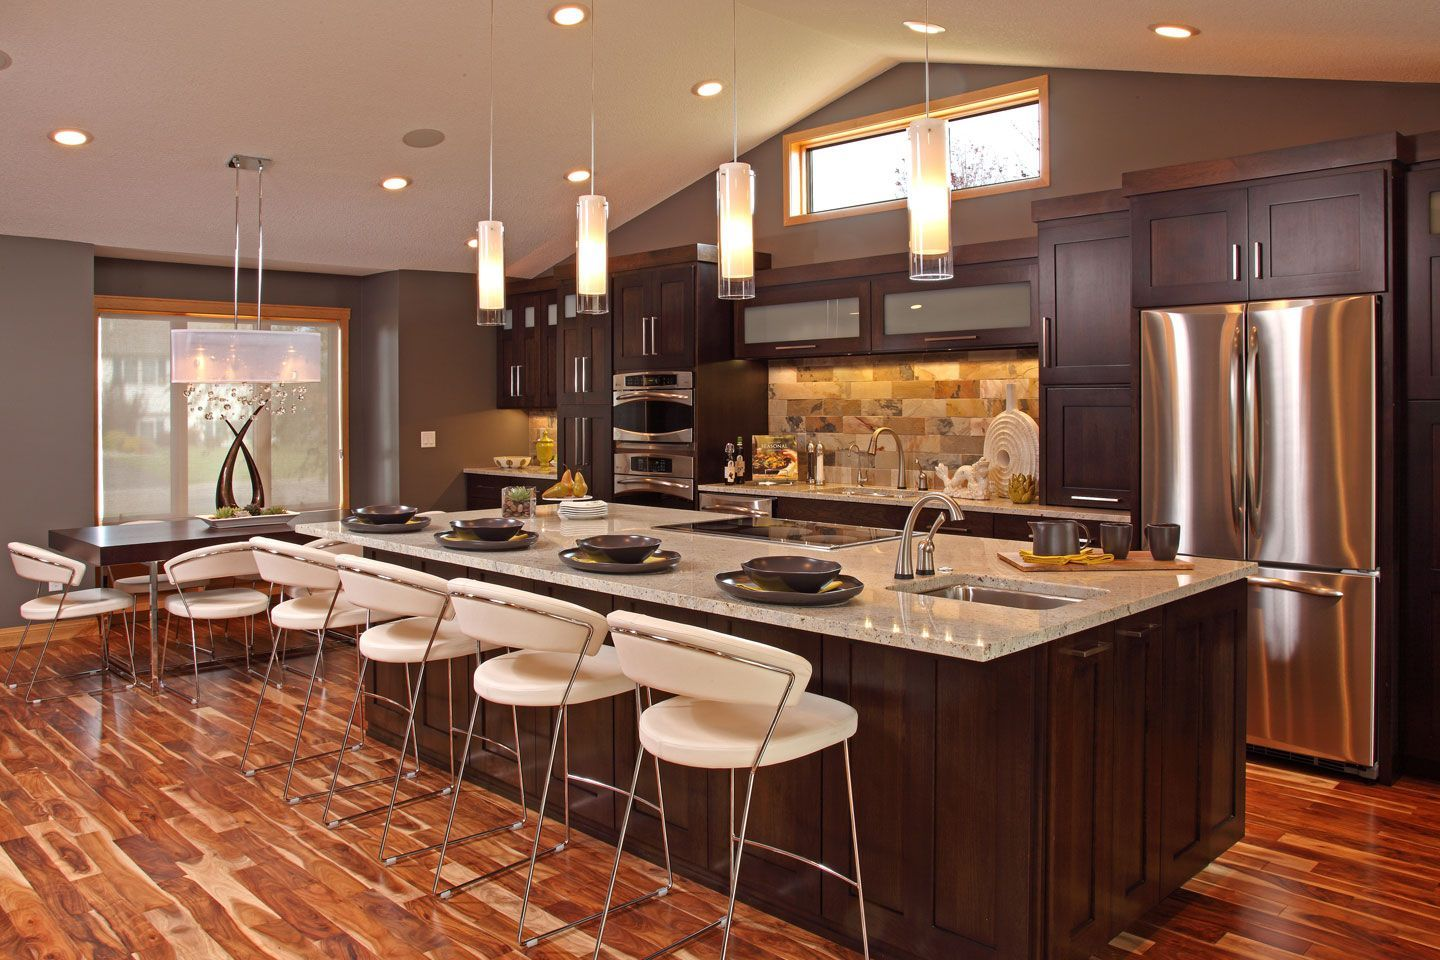 Open Galley Kitchen Designs open galley kitchens with islands | kitchen all in, open galley